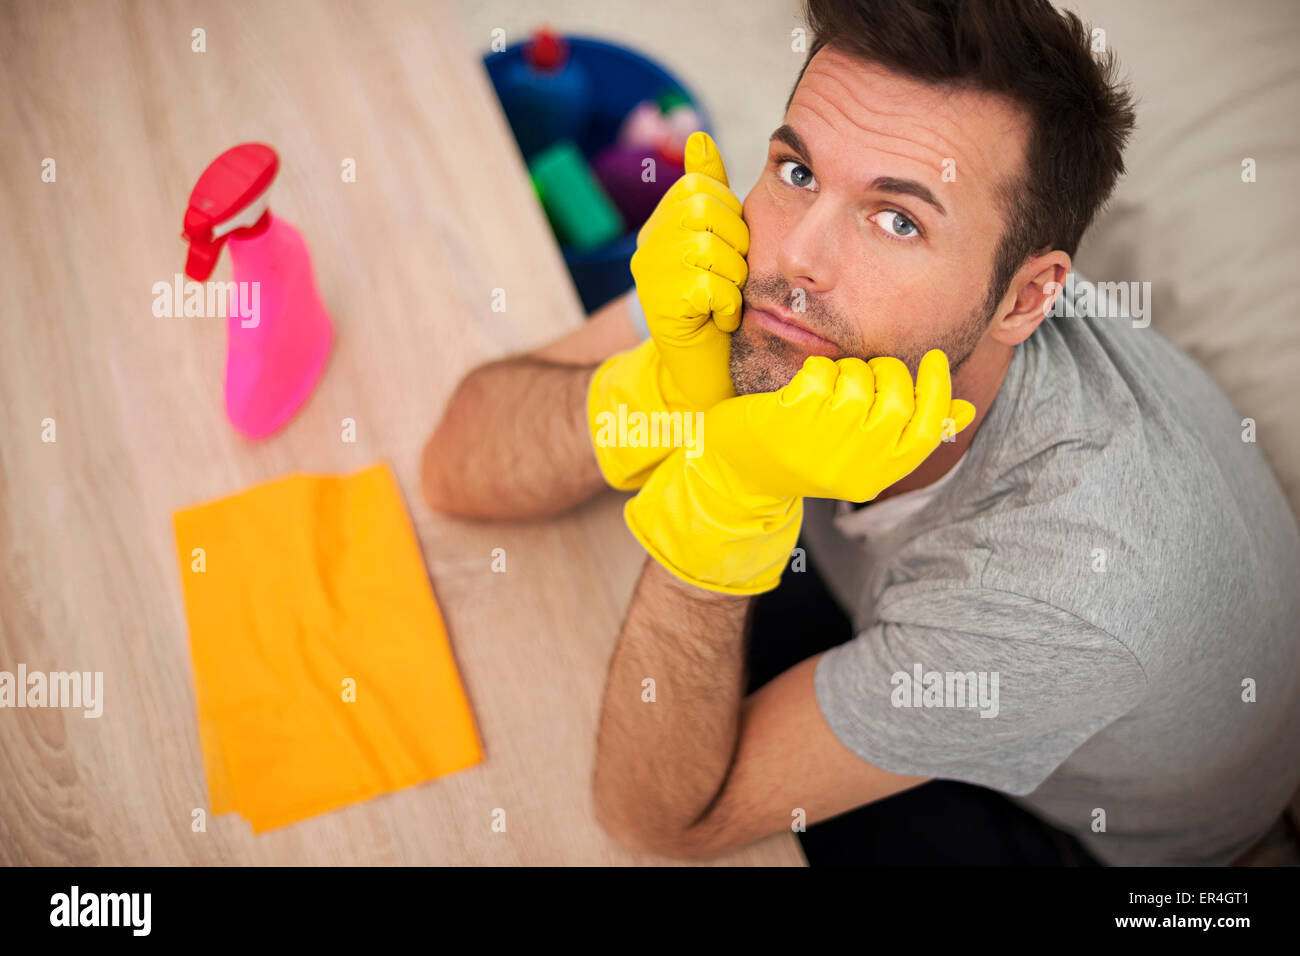 Man cleaning up the living room - Stock Image